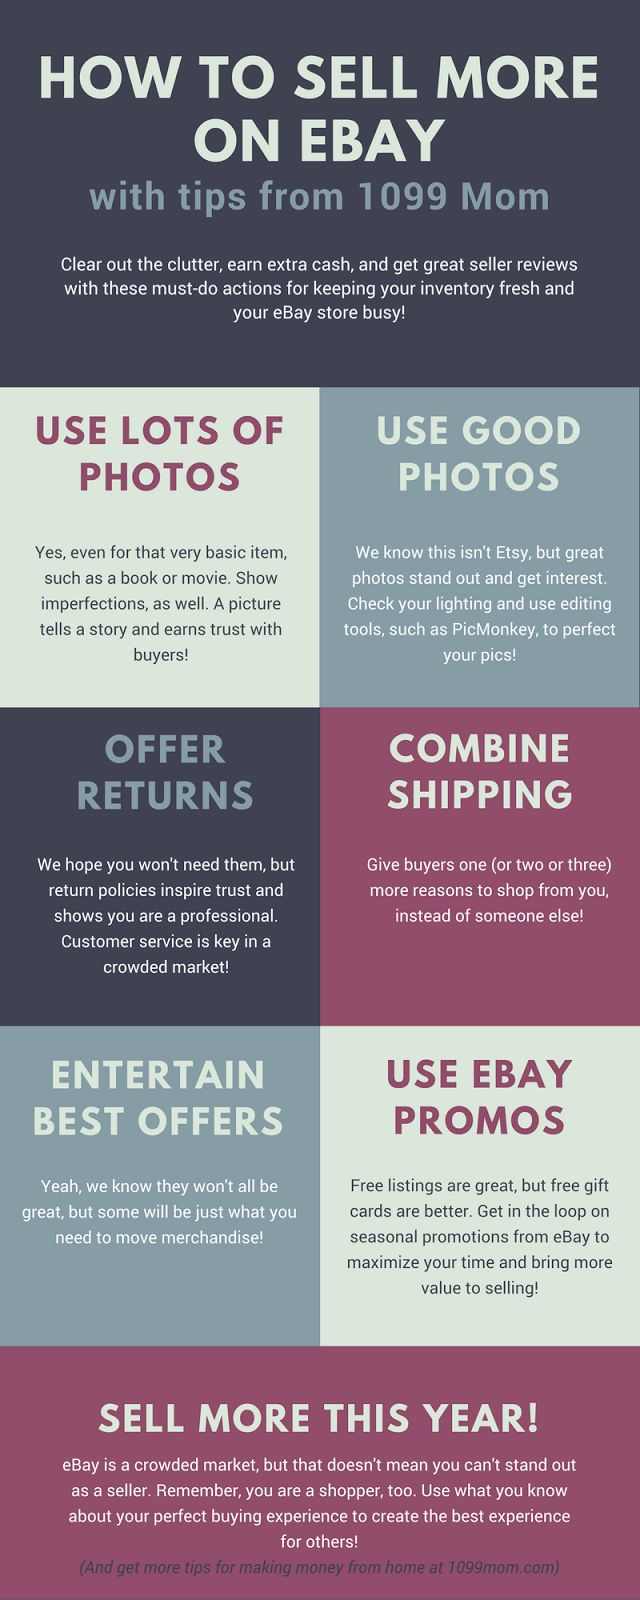 Learn how to sell more on eBay with these tips fro…